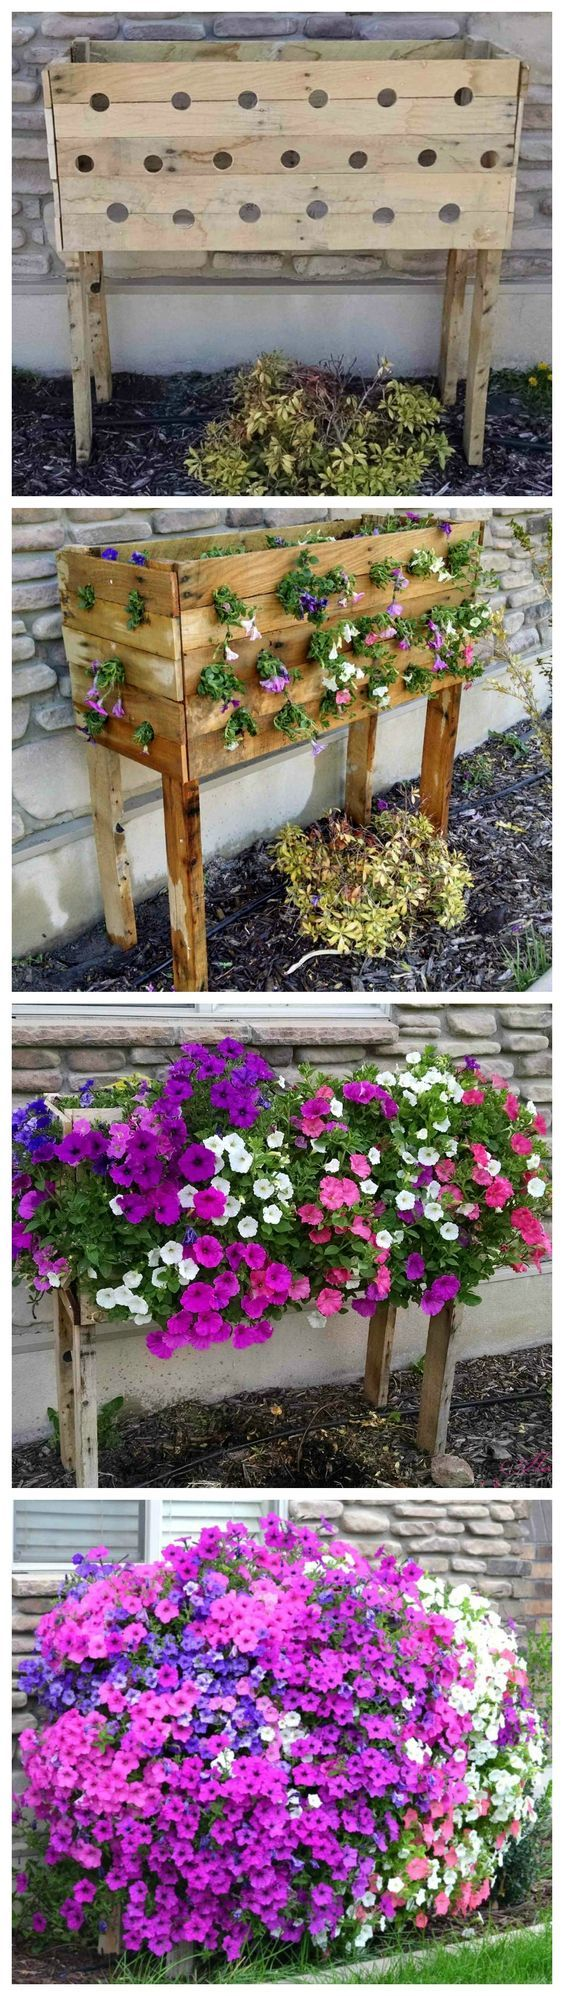 How to Build a Cascading Flower Pallet